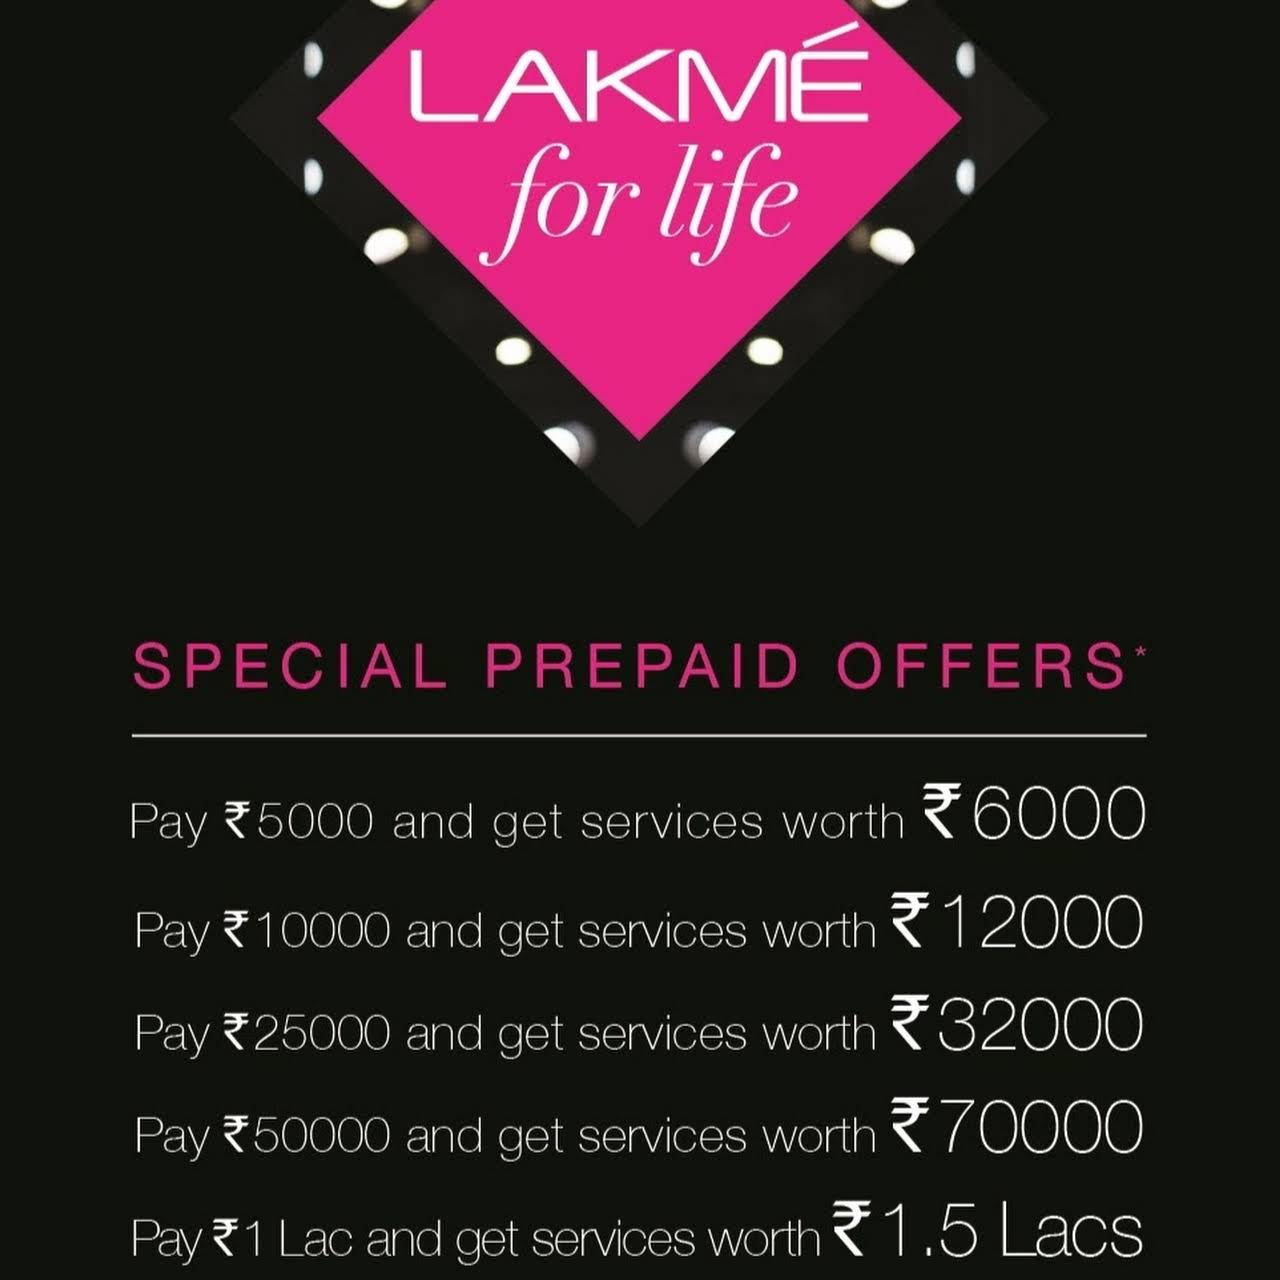 lakme salon jankipuram - beauty salon in lucknow